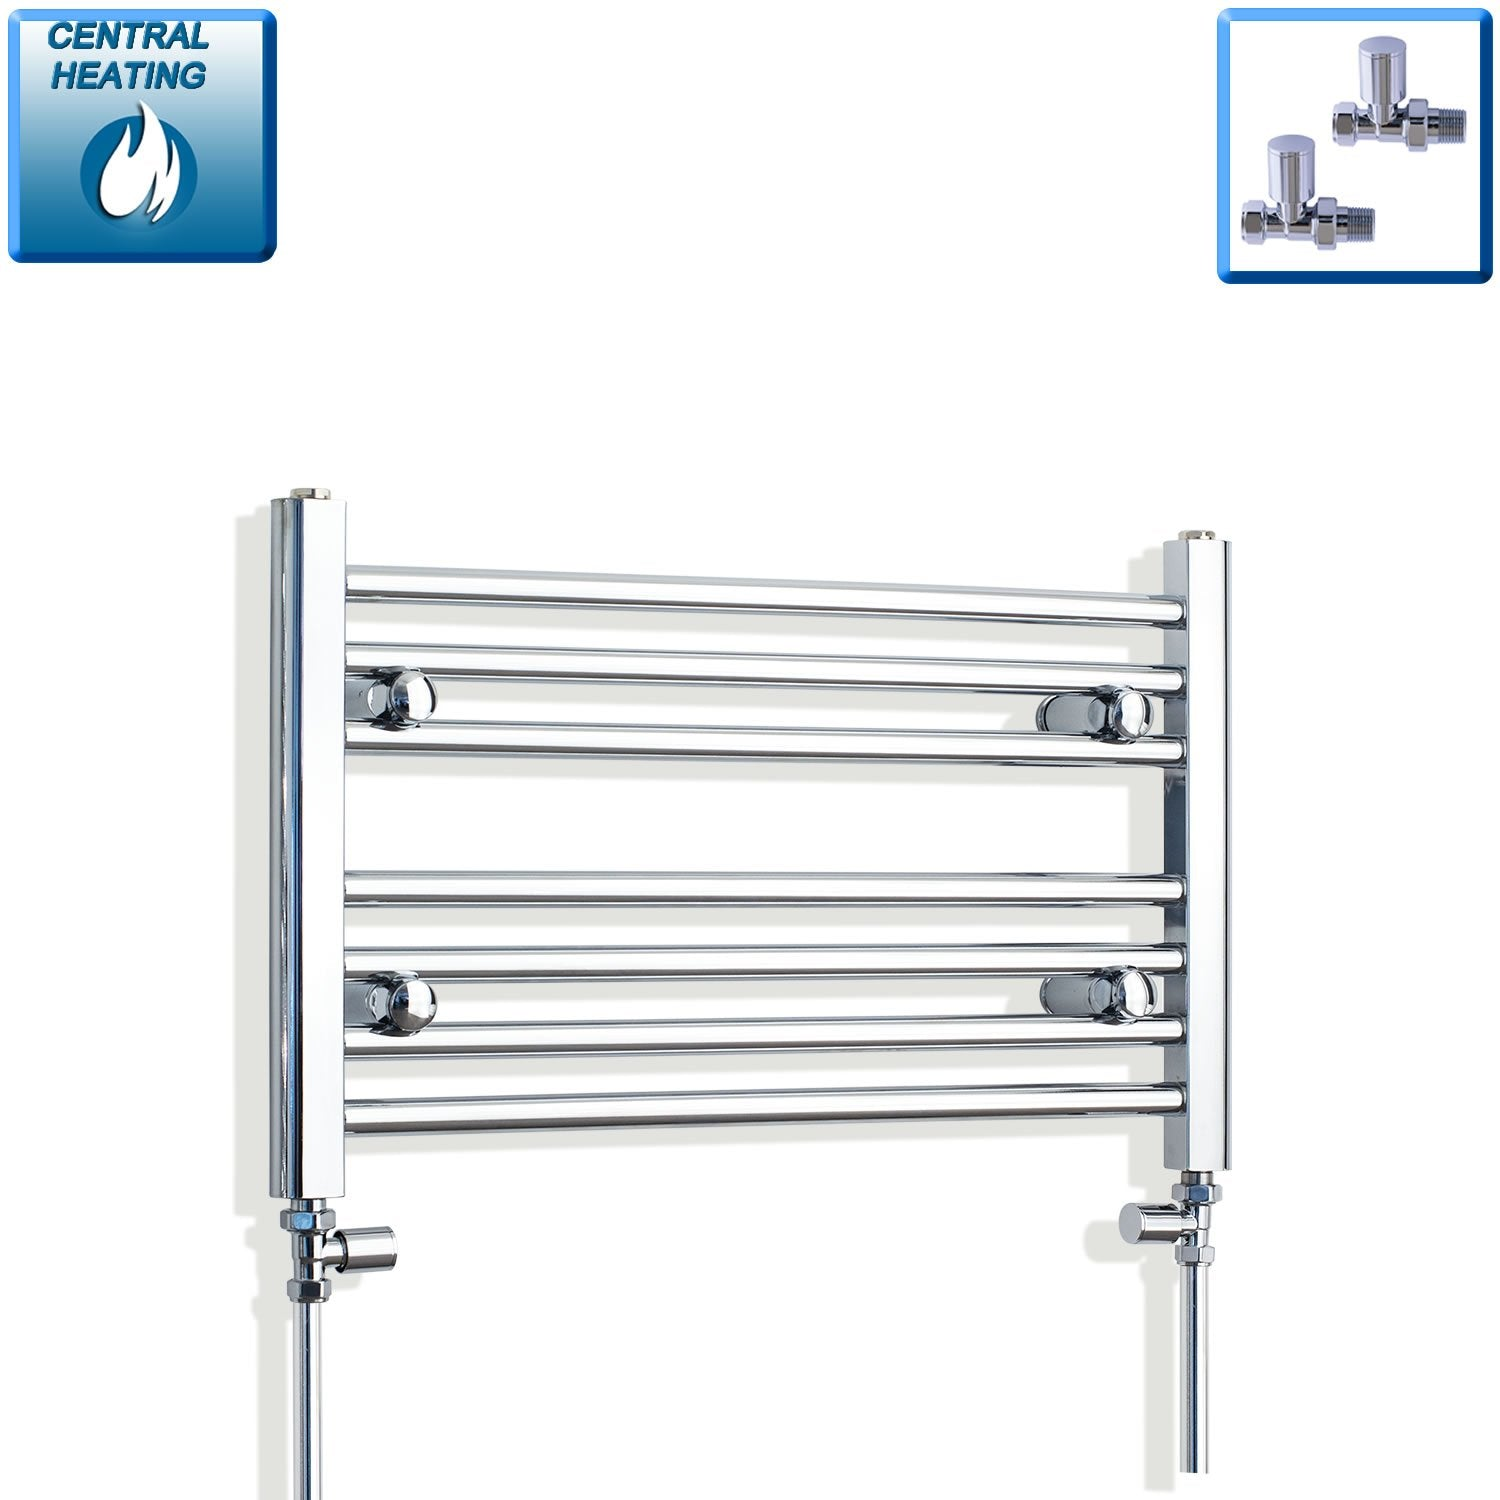 700mm Wide 400mm High Flat Chrome Heated Towel Rail Radiator HTR,With Straight Valve